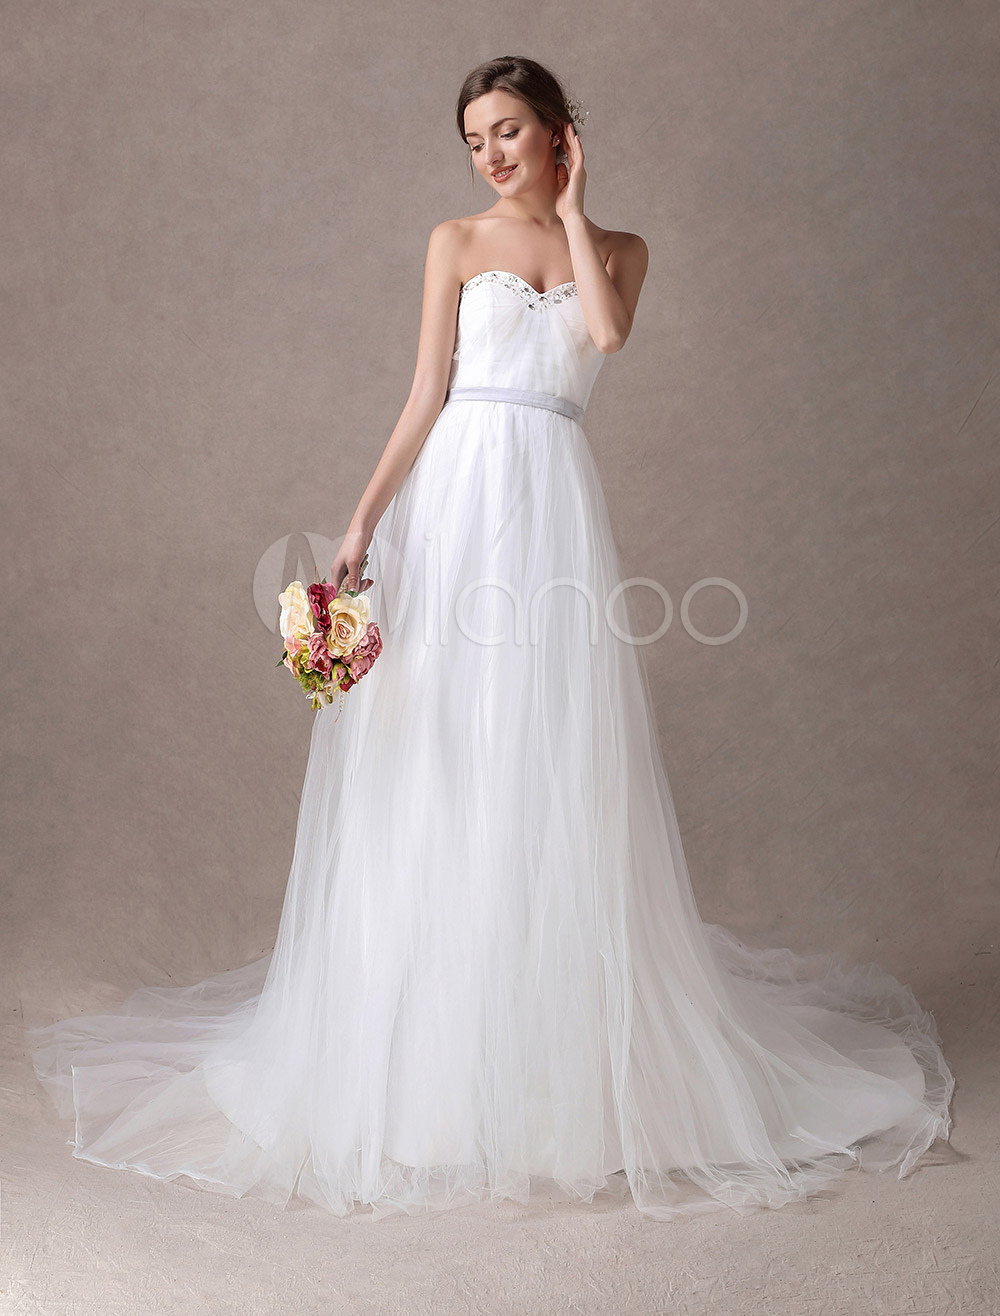 Princess Sweetheart A-Line Strapless Tulle Satin Bridal Dress